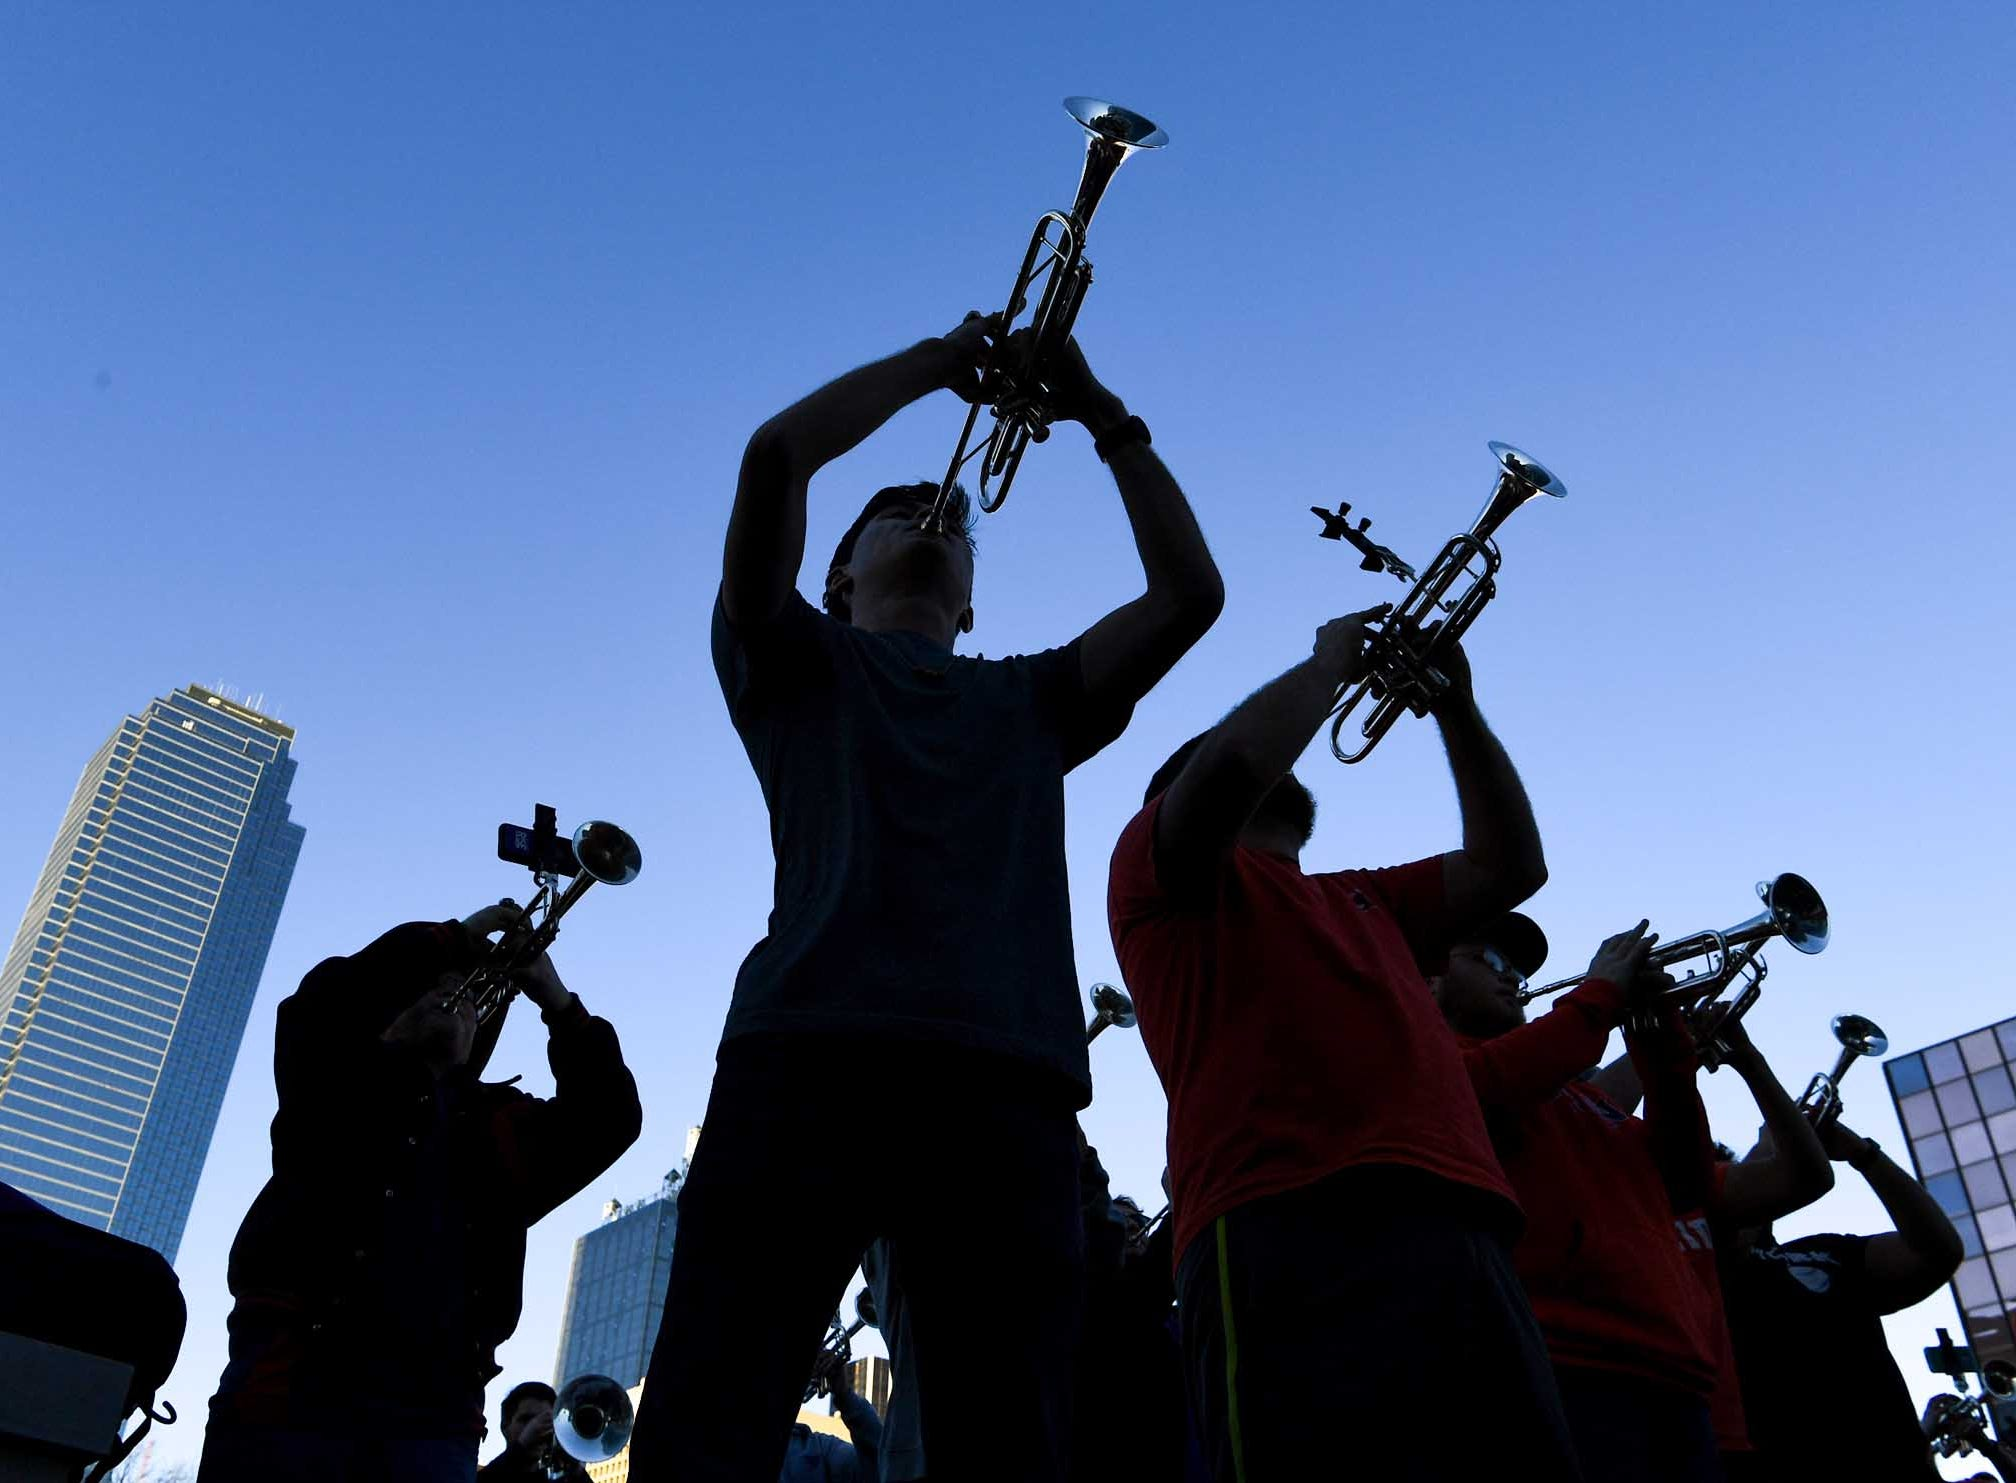 Will McAlhany plays trumpet with bandmates near a skyline of buildings during Clemson Band practice outside the Omni in downtown Dallas December 27, 2018.